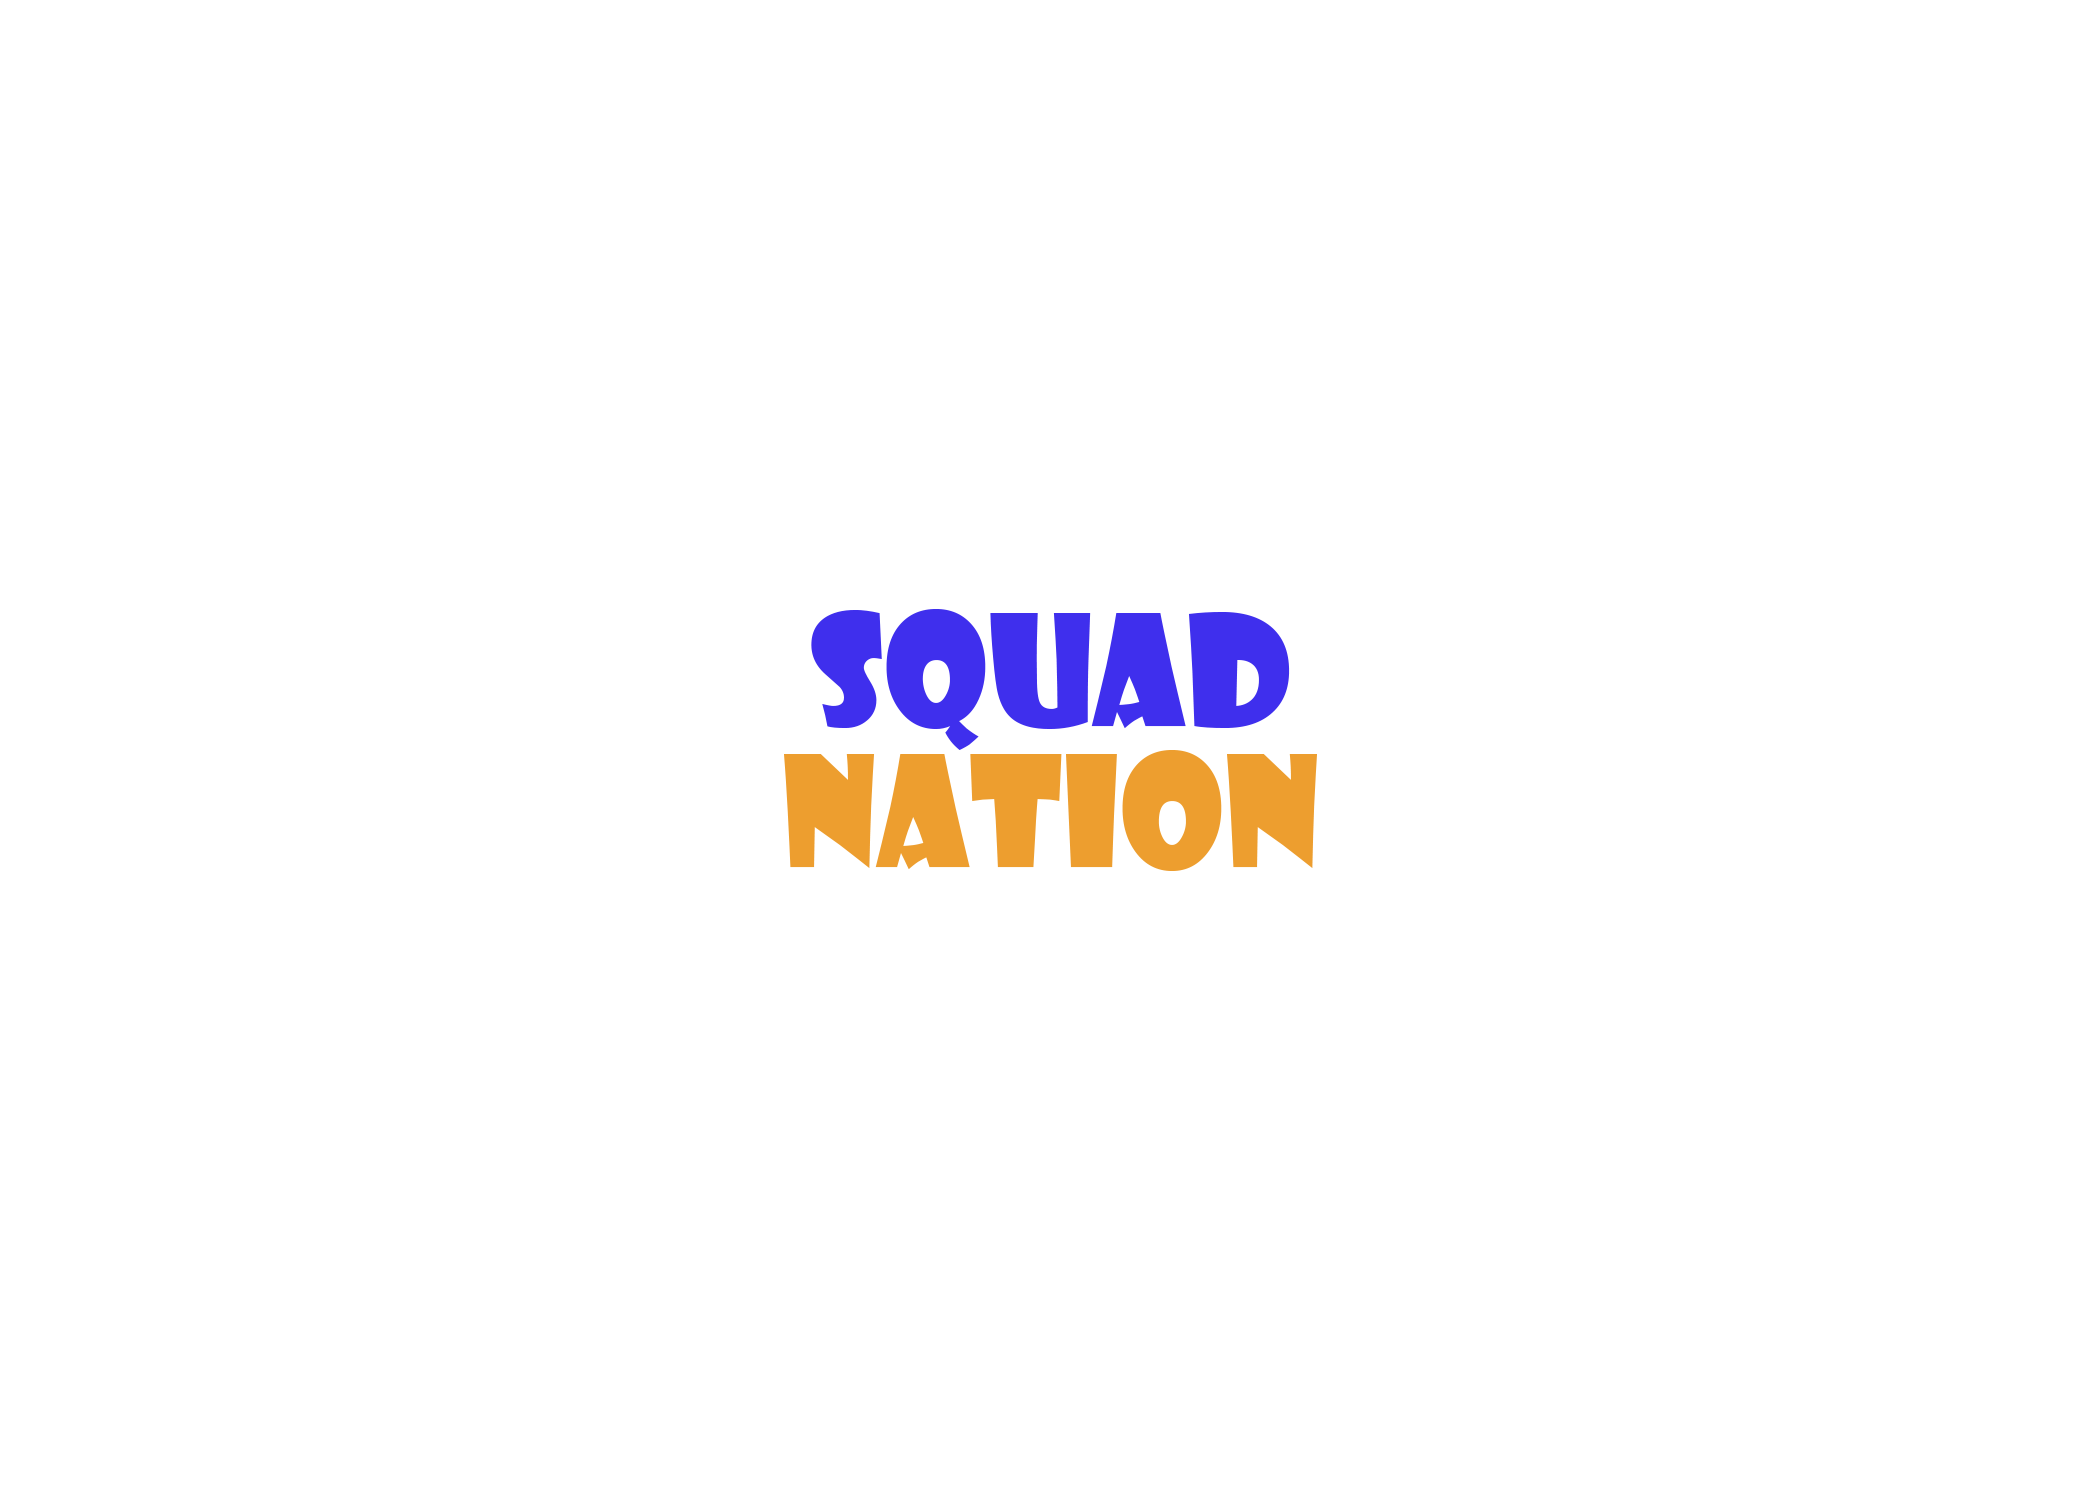 Our Squad Nation